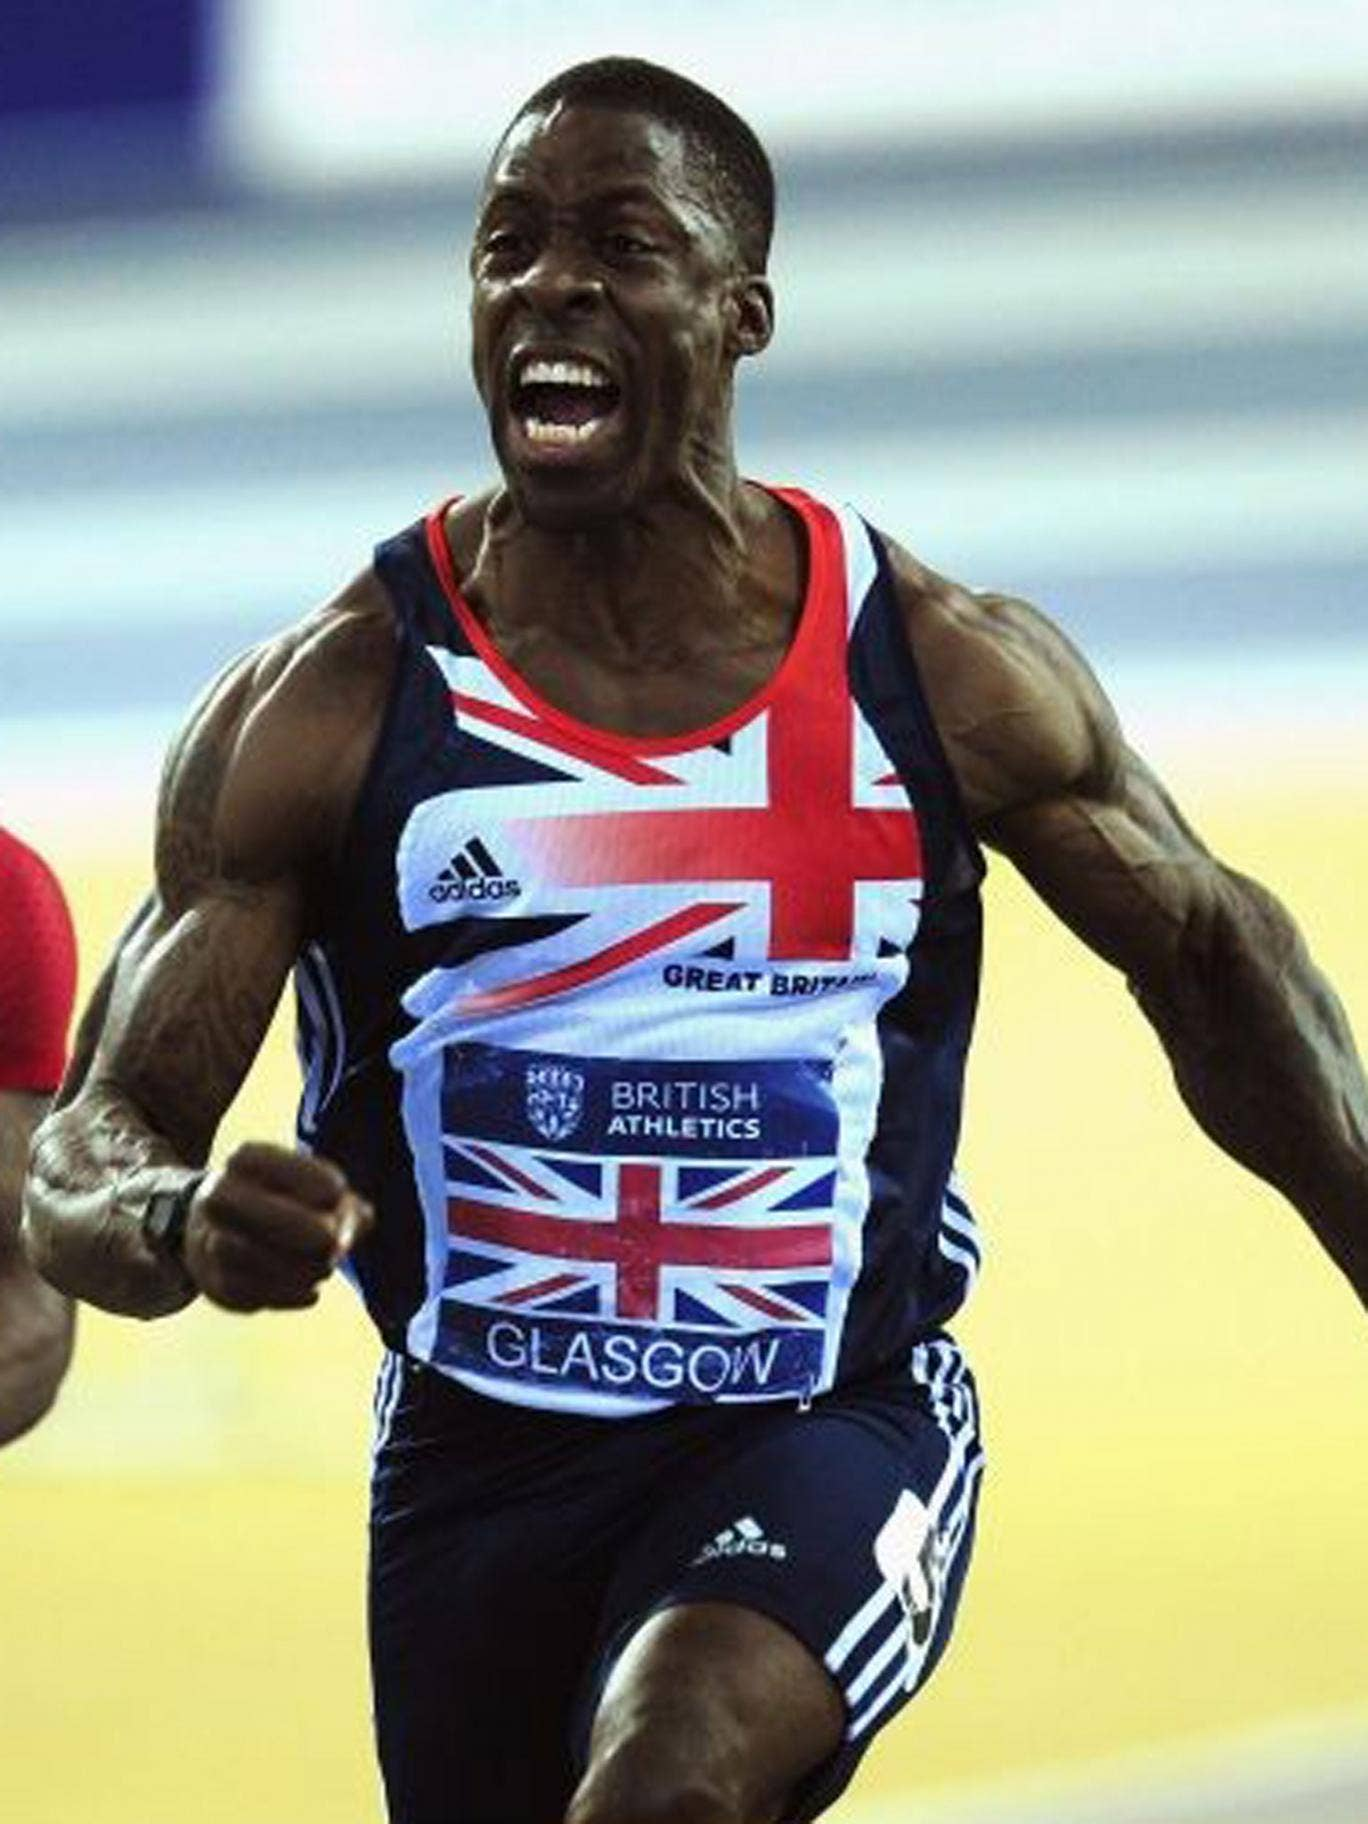 Dwain Chambers recorded the second fastest time of the year in the 60m